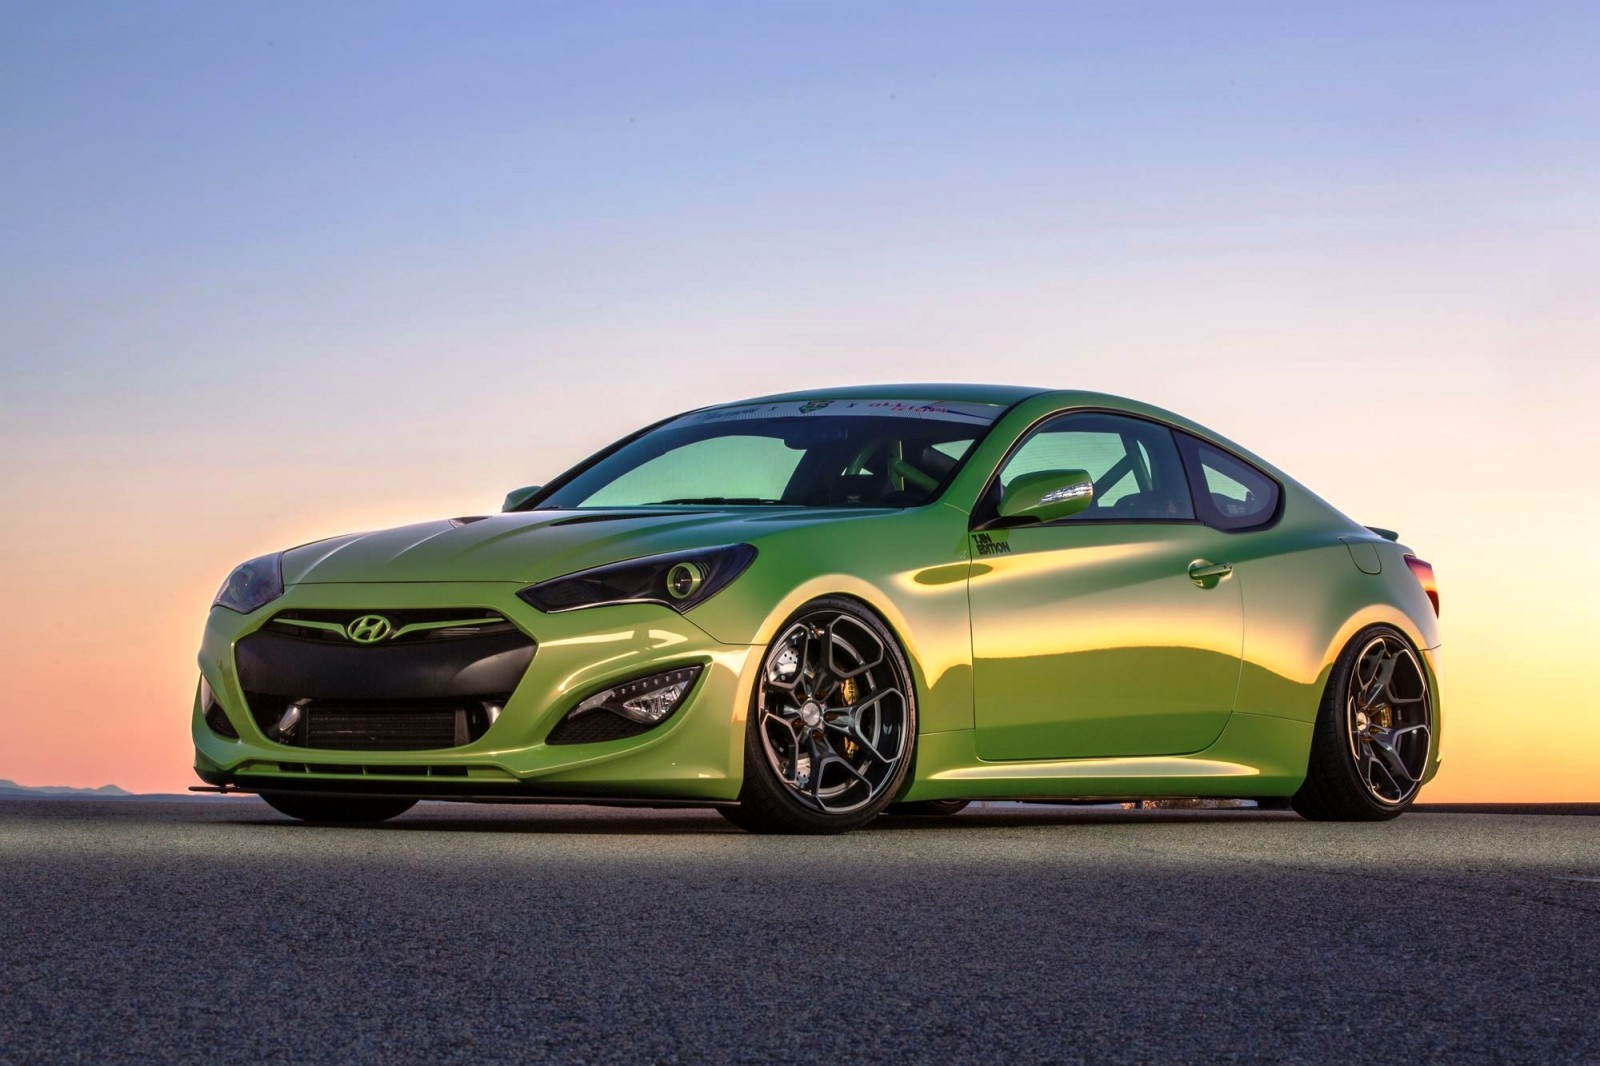 Hyundai SEMA 2015 - ARK and TJIN Genesis Coupes